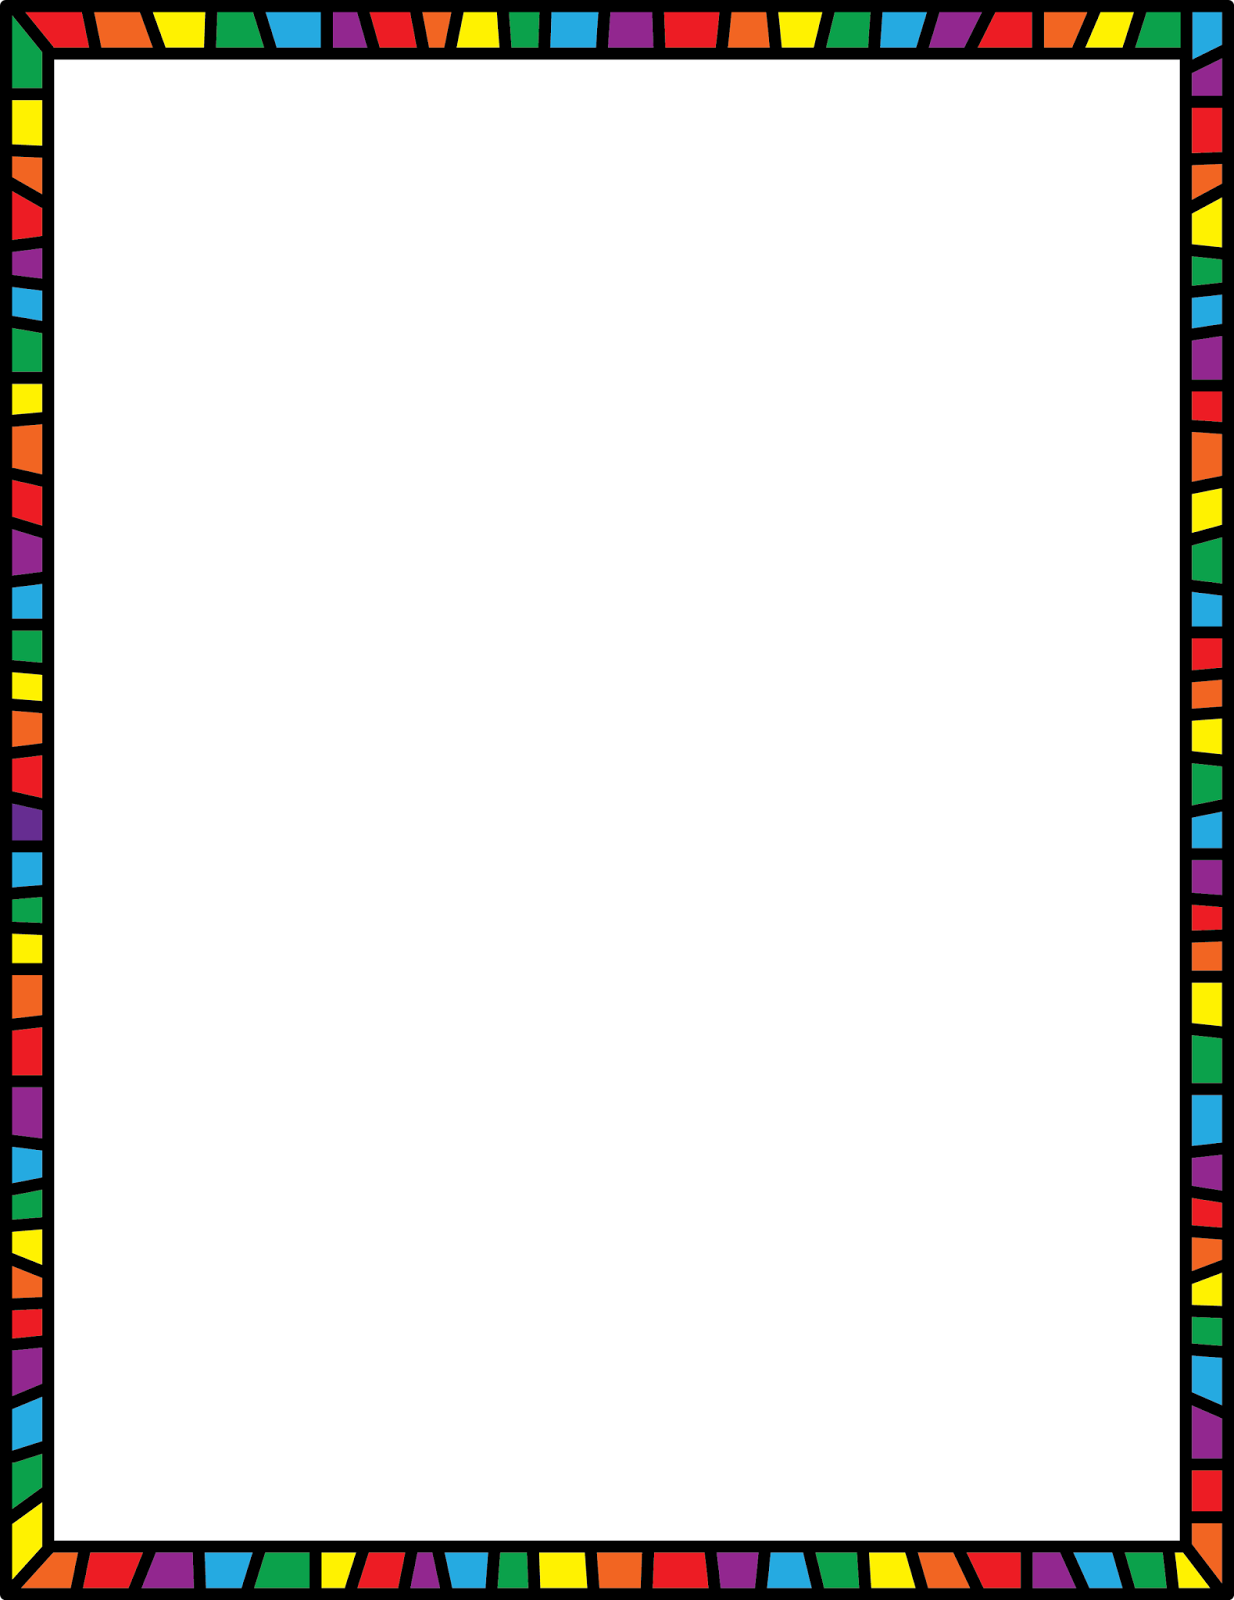 Thin frame clipart graphic free download Thin clipart border - ClipartFox graphic free download